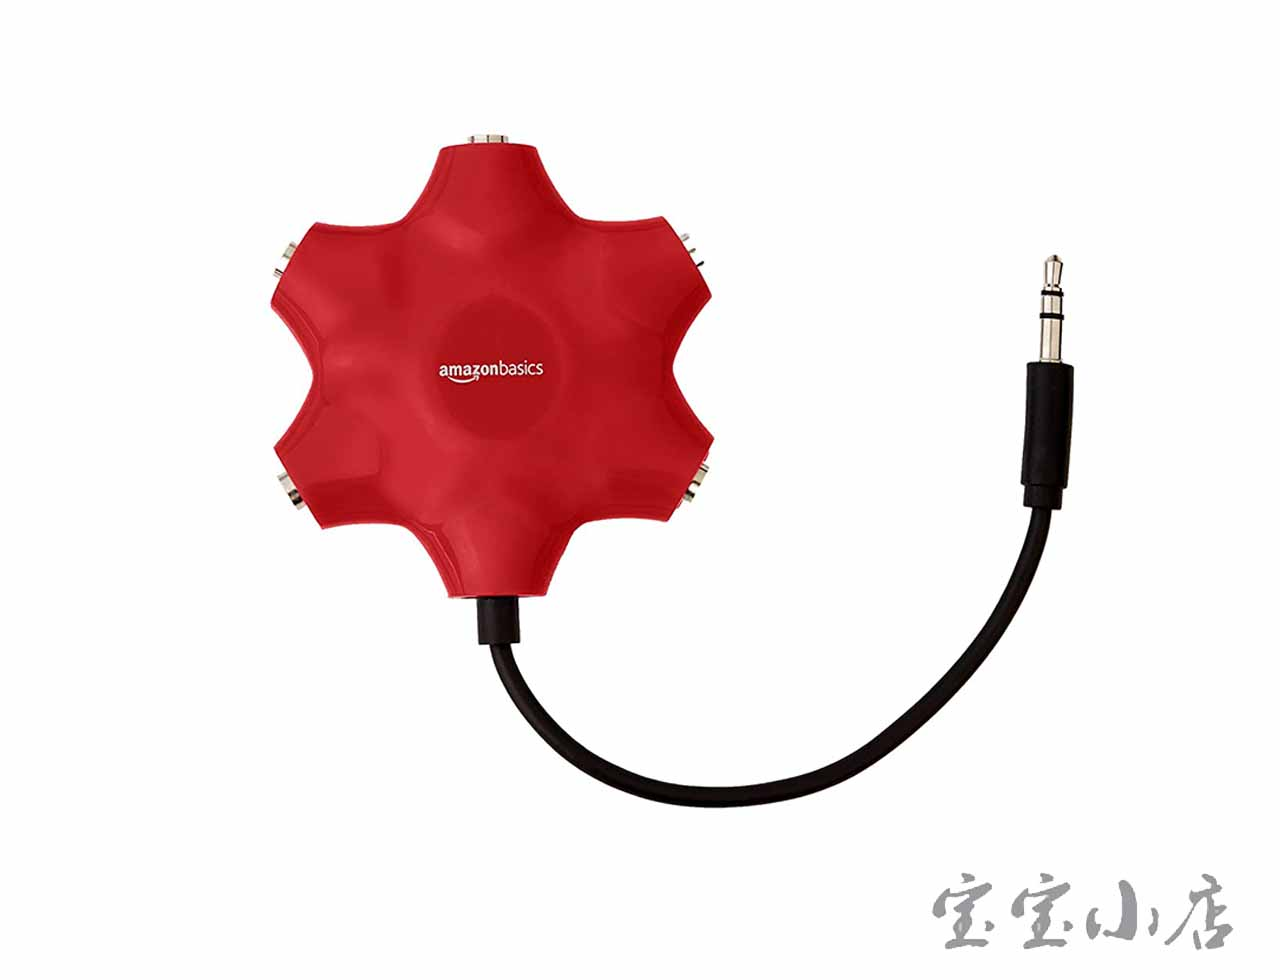 AmazonBasics亚马逊倍思AUX TO 3.5mm耳机一拖五转接器头 5-Way Multi Headphone Audio Splitter Connector, Red